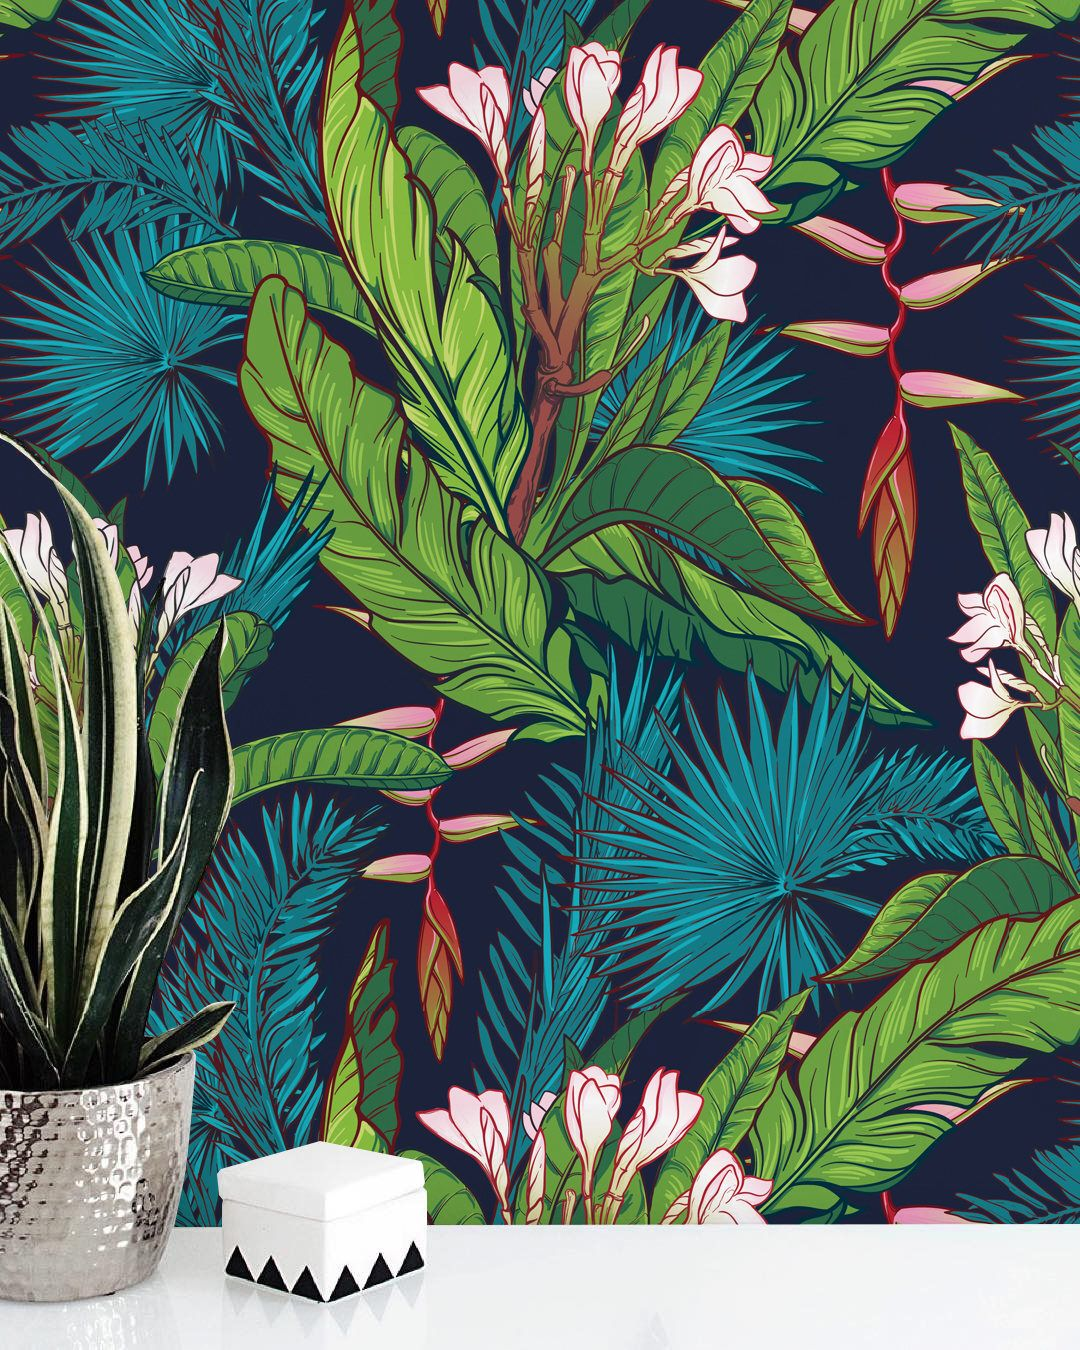 Tropical Jungle Removable Wallpaper Watercolor Wall Covering Peel And Stick Self Adhesive Monstera Leaves Paradise 123 Jungle Wallpaper Watercolor Walls Removable Wallpaper